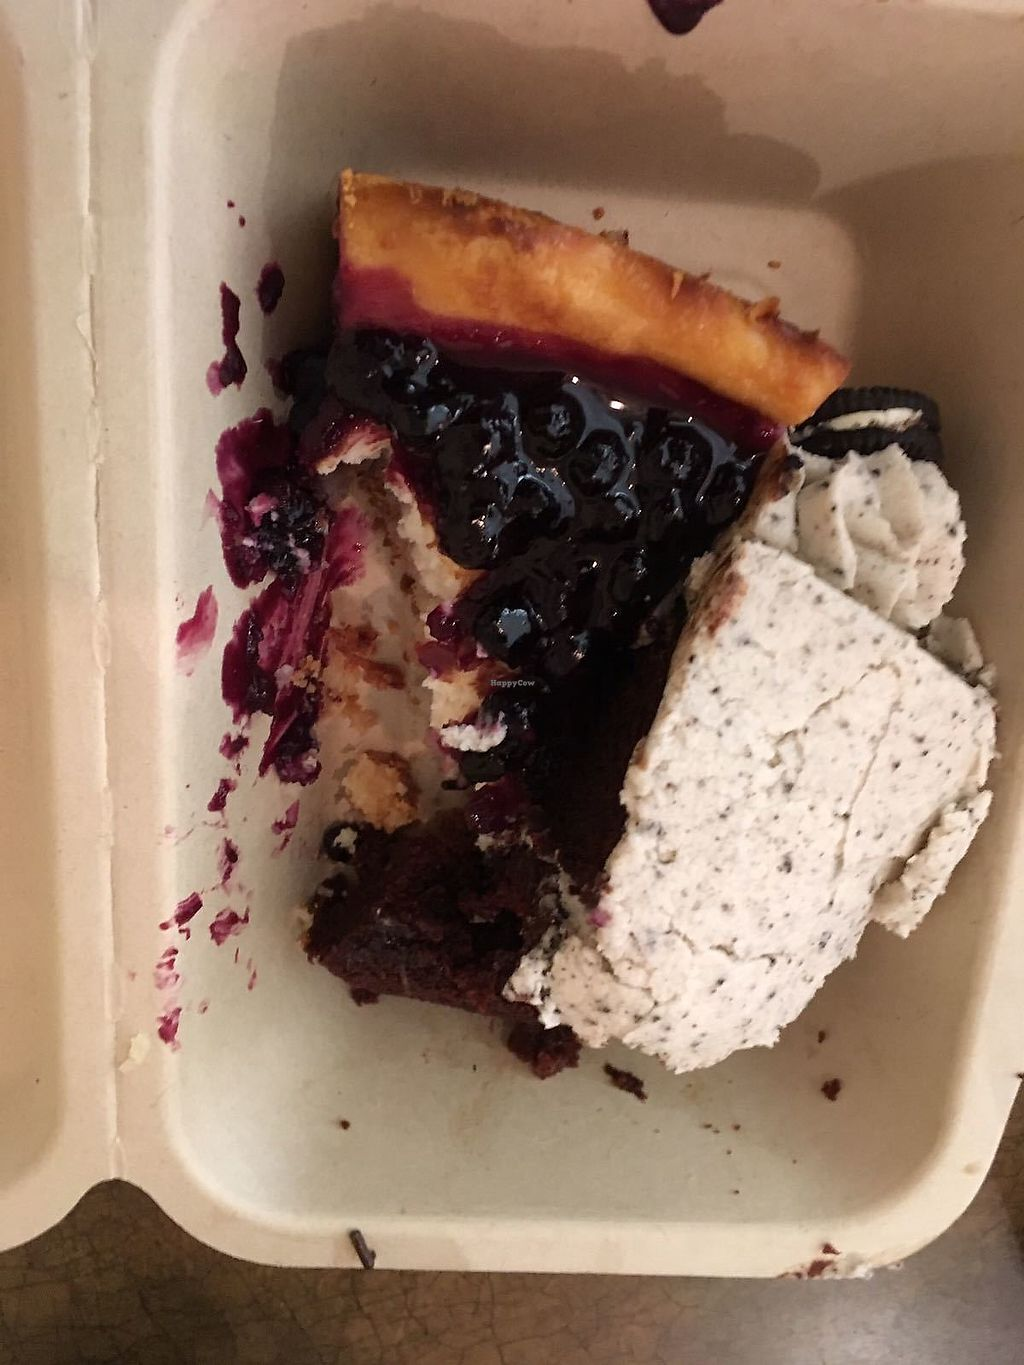 "Photo of Cosmic Treats  by <a href=""/members/profile/Sharkademus"">Sharkademus</a> <br/>Take away Cheesecake and Chocolate Oreo Cake. Bit mushy so not the greatest photo ha! But tasty!  <br/> March 12, 2018  - <a href='/contact/abuse/image/62637/369711'>Report</a>"